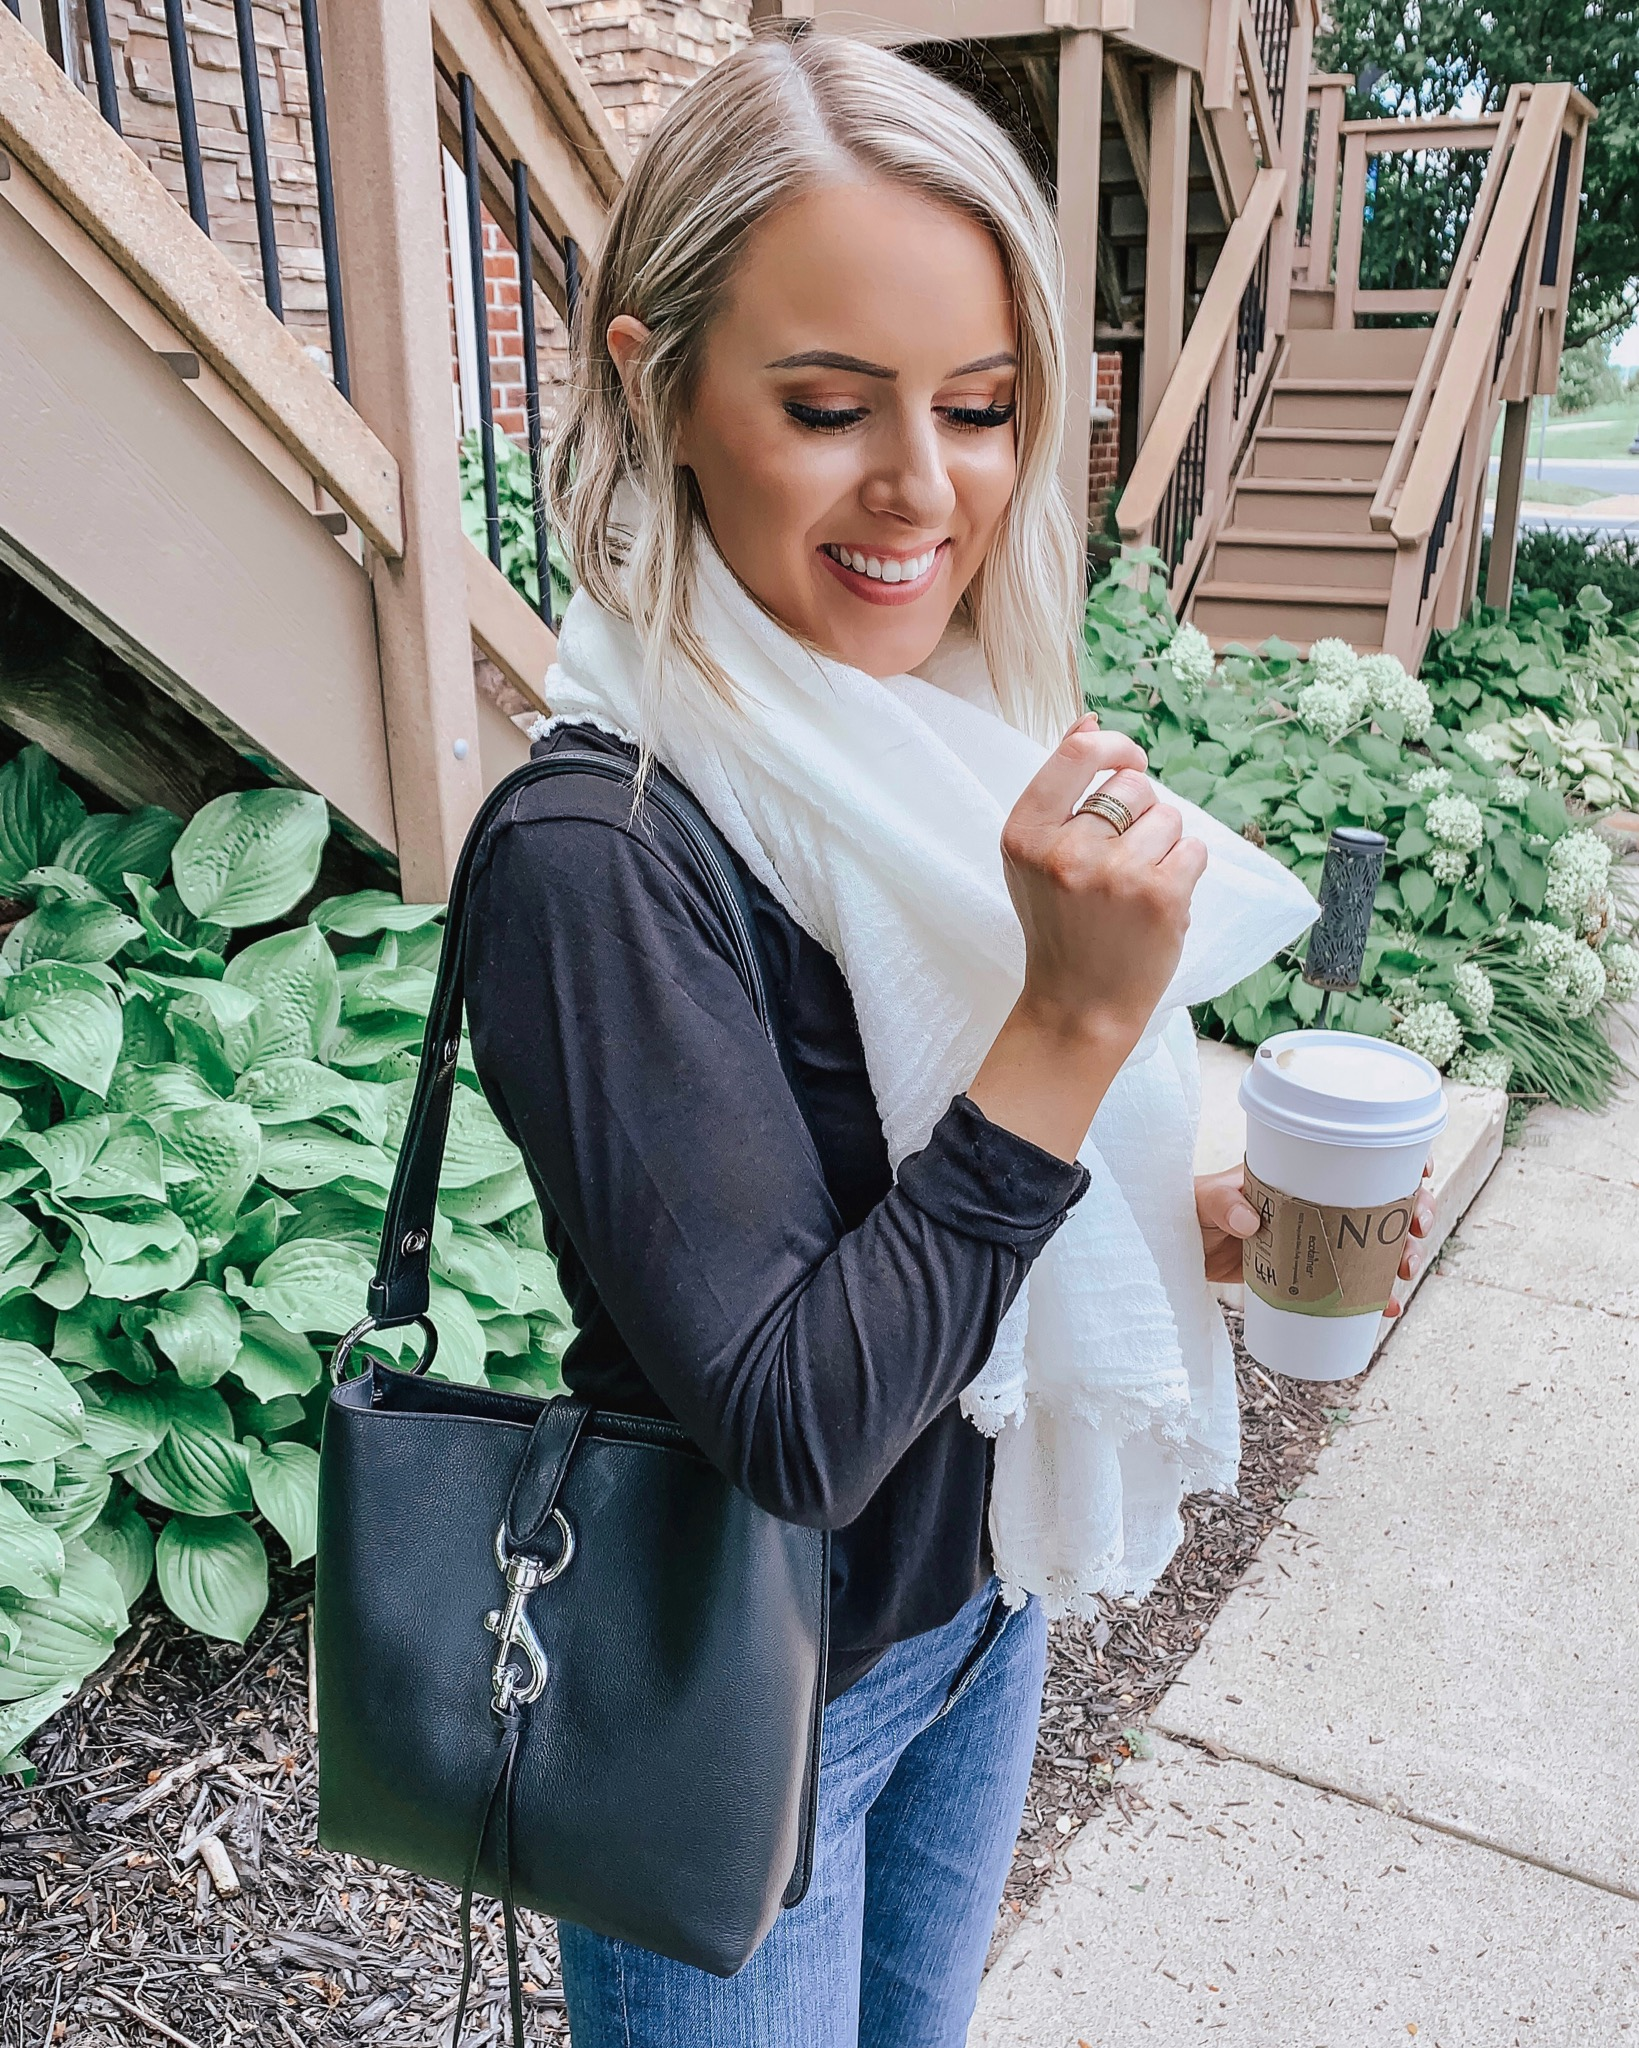 Affordable Fall Outfits| Style Blogger Lauren Meyer shares Affordable Fall Outfits